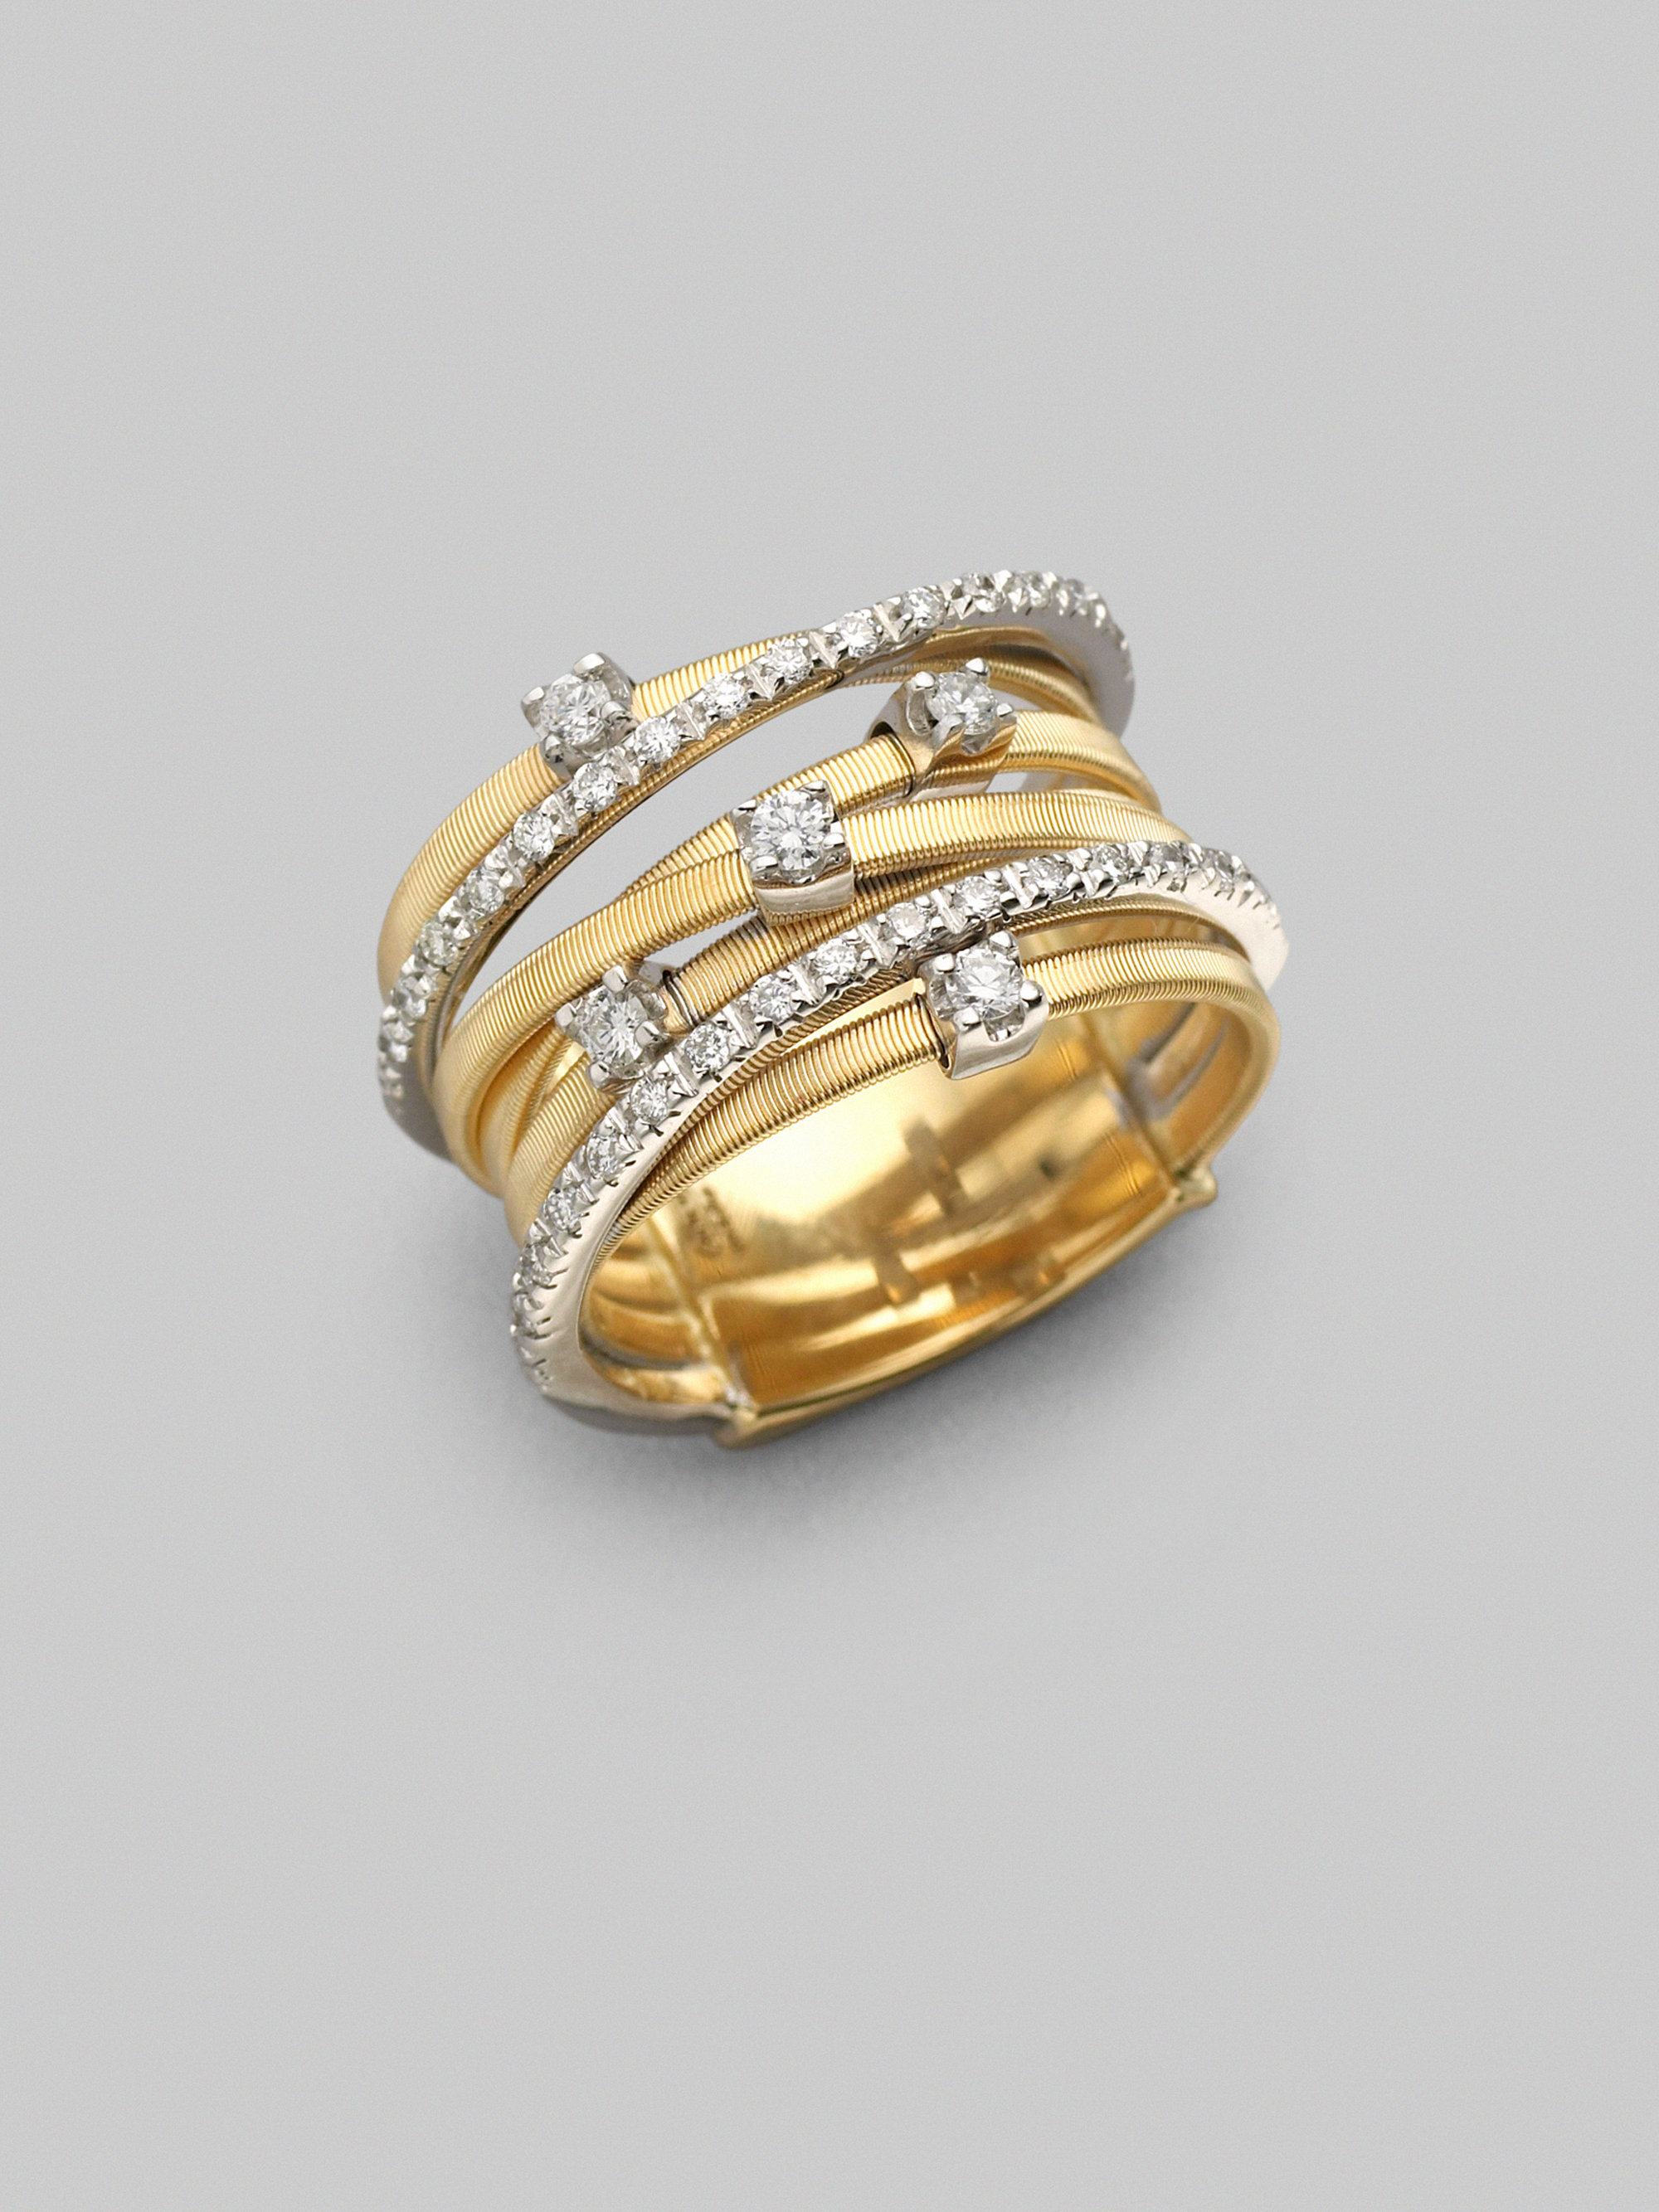 by g tashne enagement simon bands gold jewels engagement ring ladies product